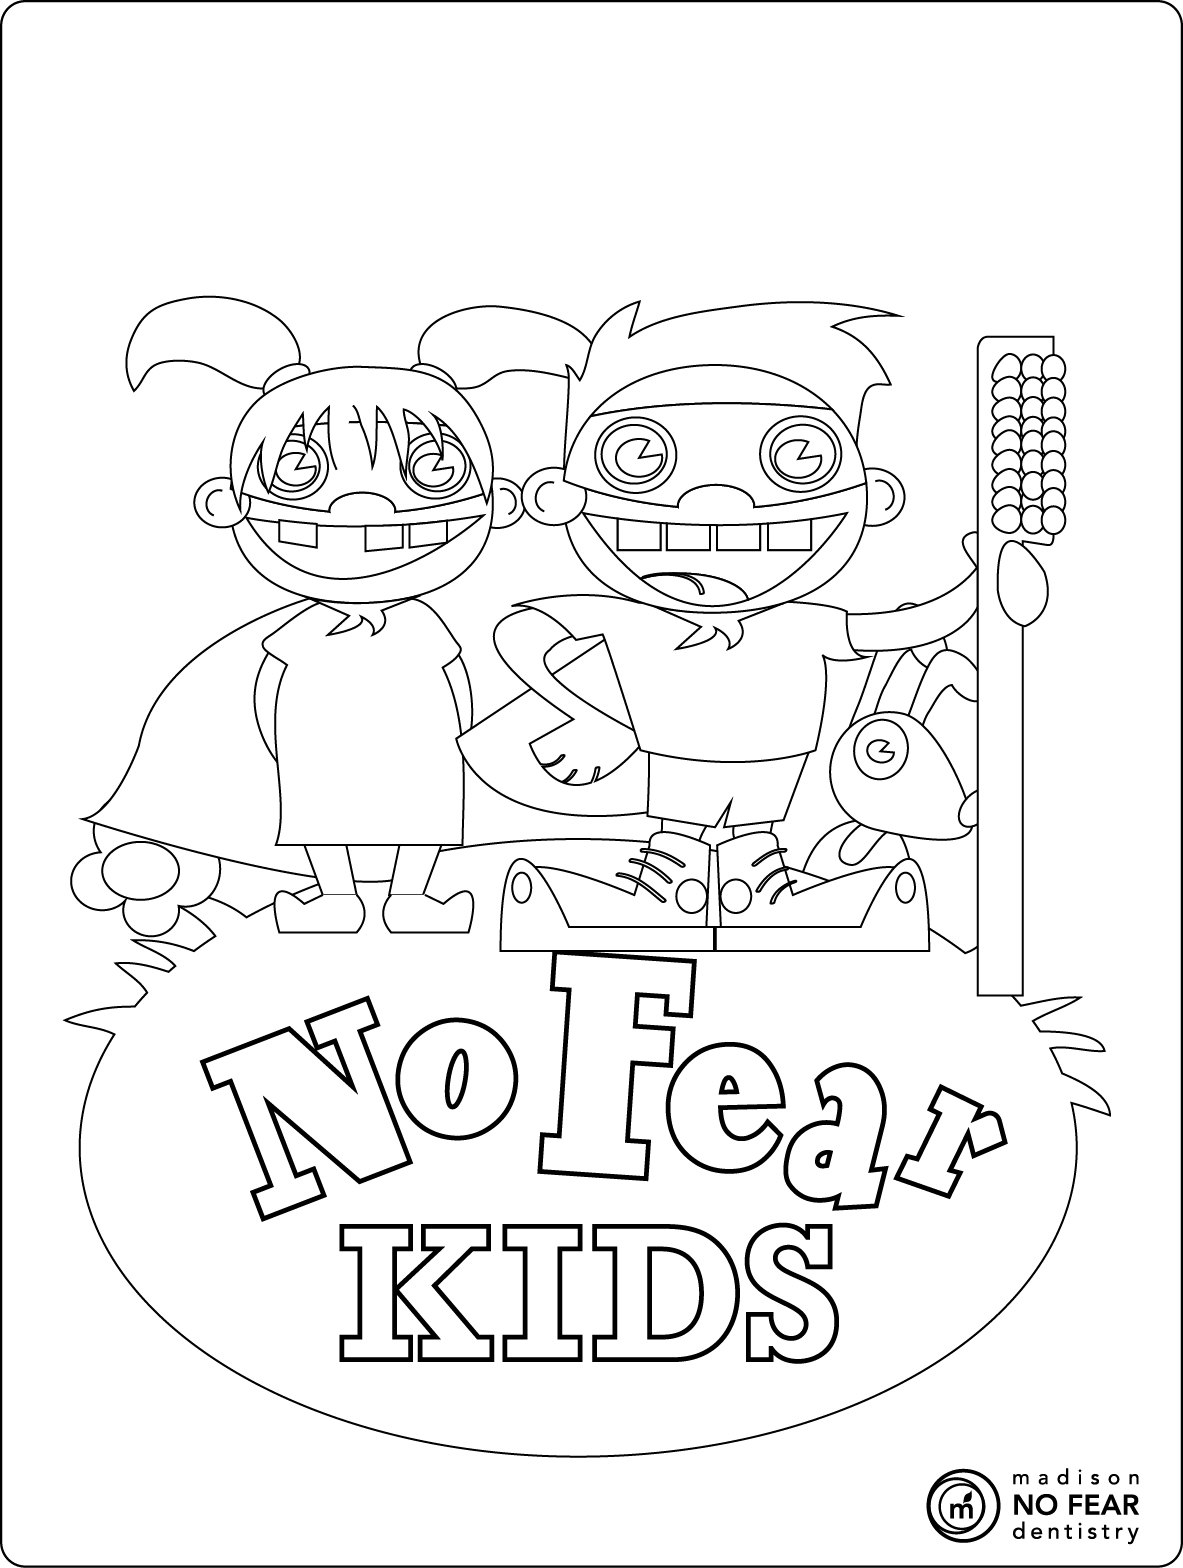 No Fear Kids Zone Download Of Latest Dental Health Coloring Sheets Healthy Pages My Plate Dairy to Print